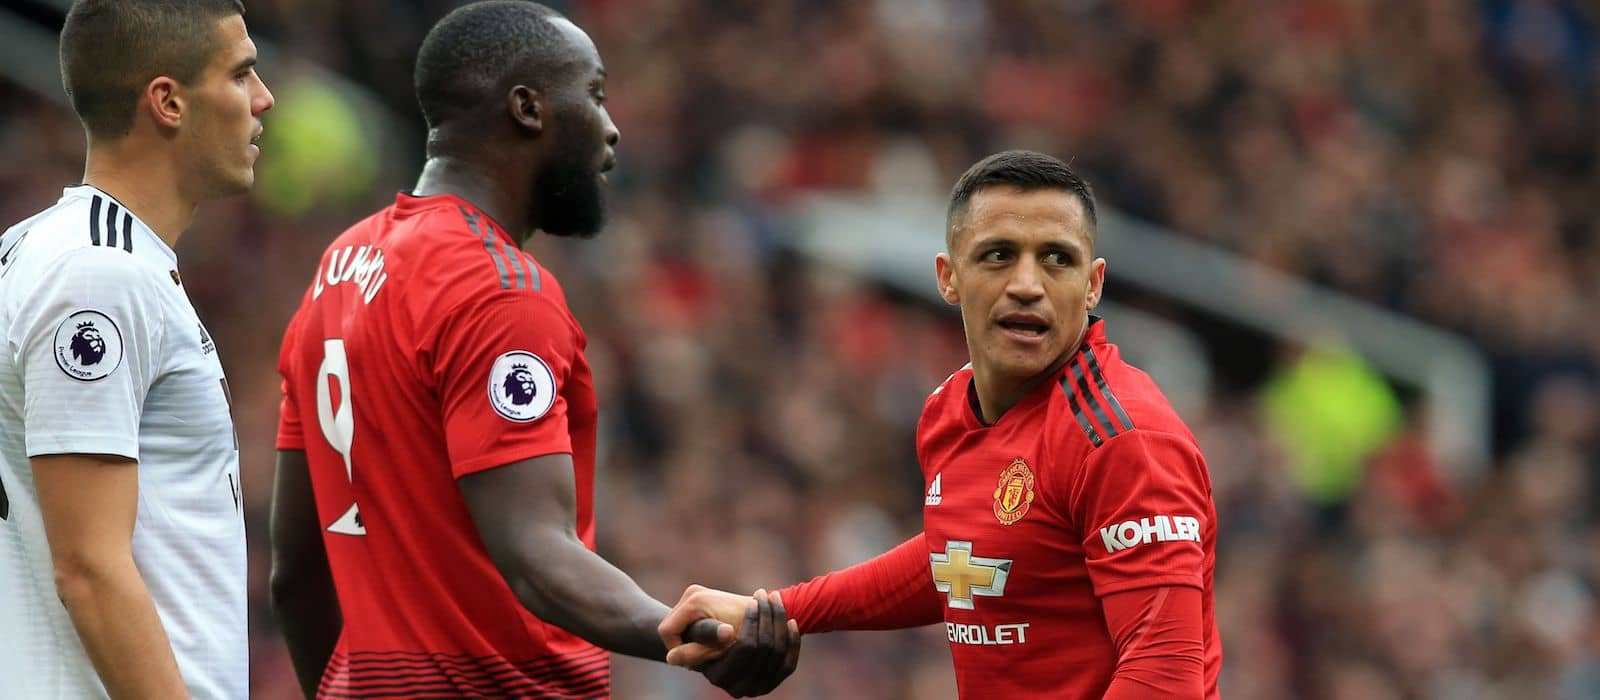 Ole Gunnar Solskjaer confirms Alexis Sanchez and Romelu Lukaku will start vs Reading